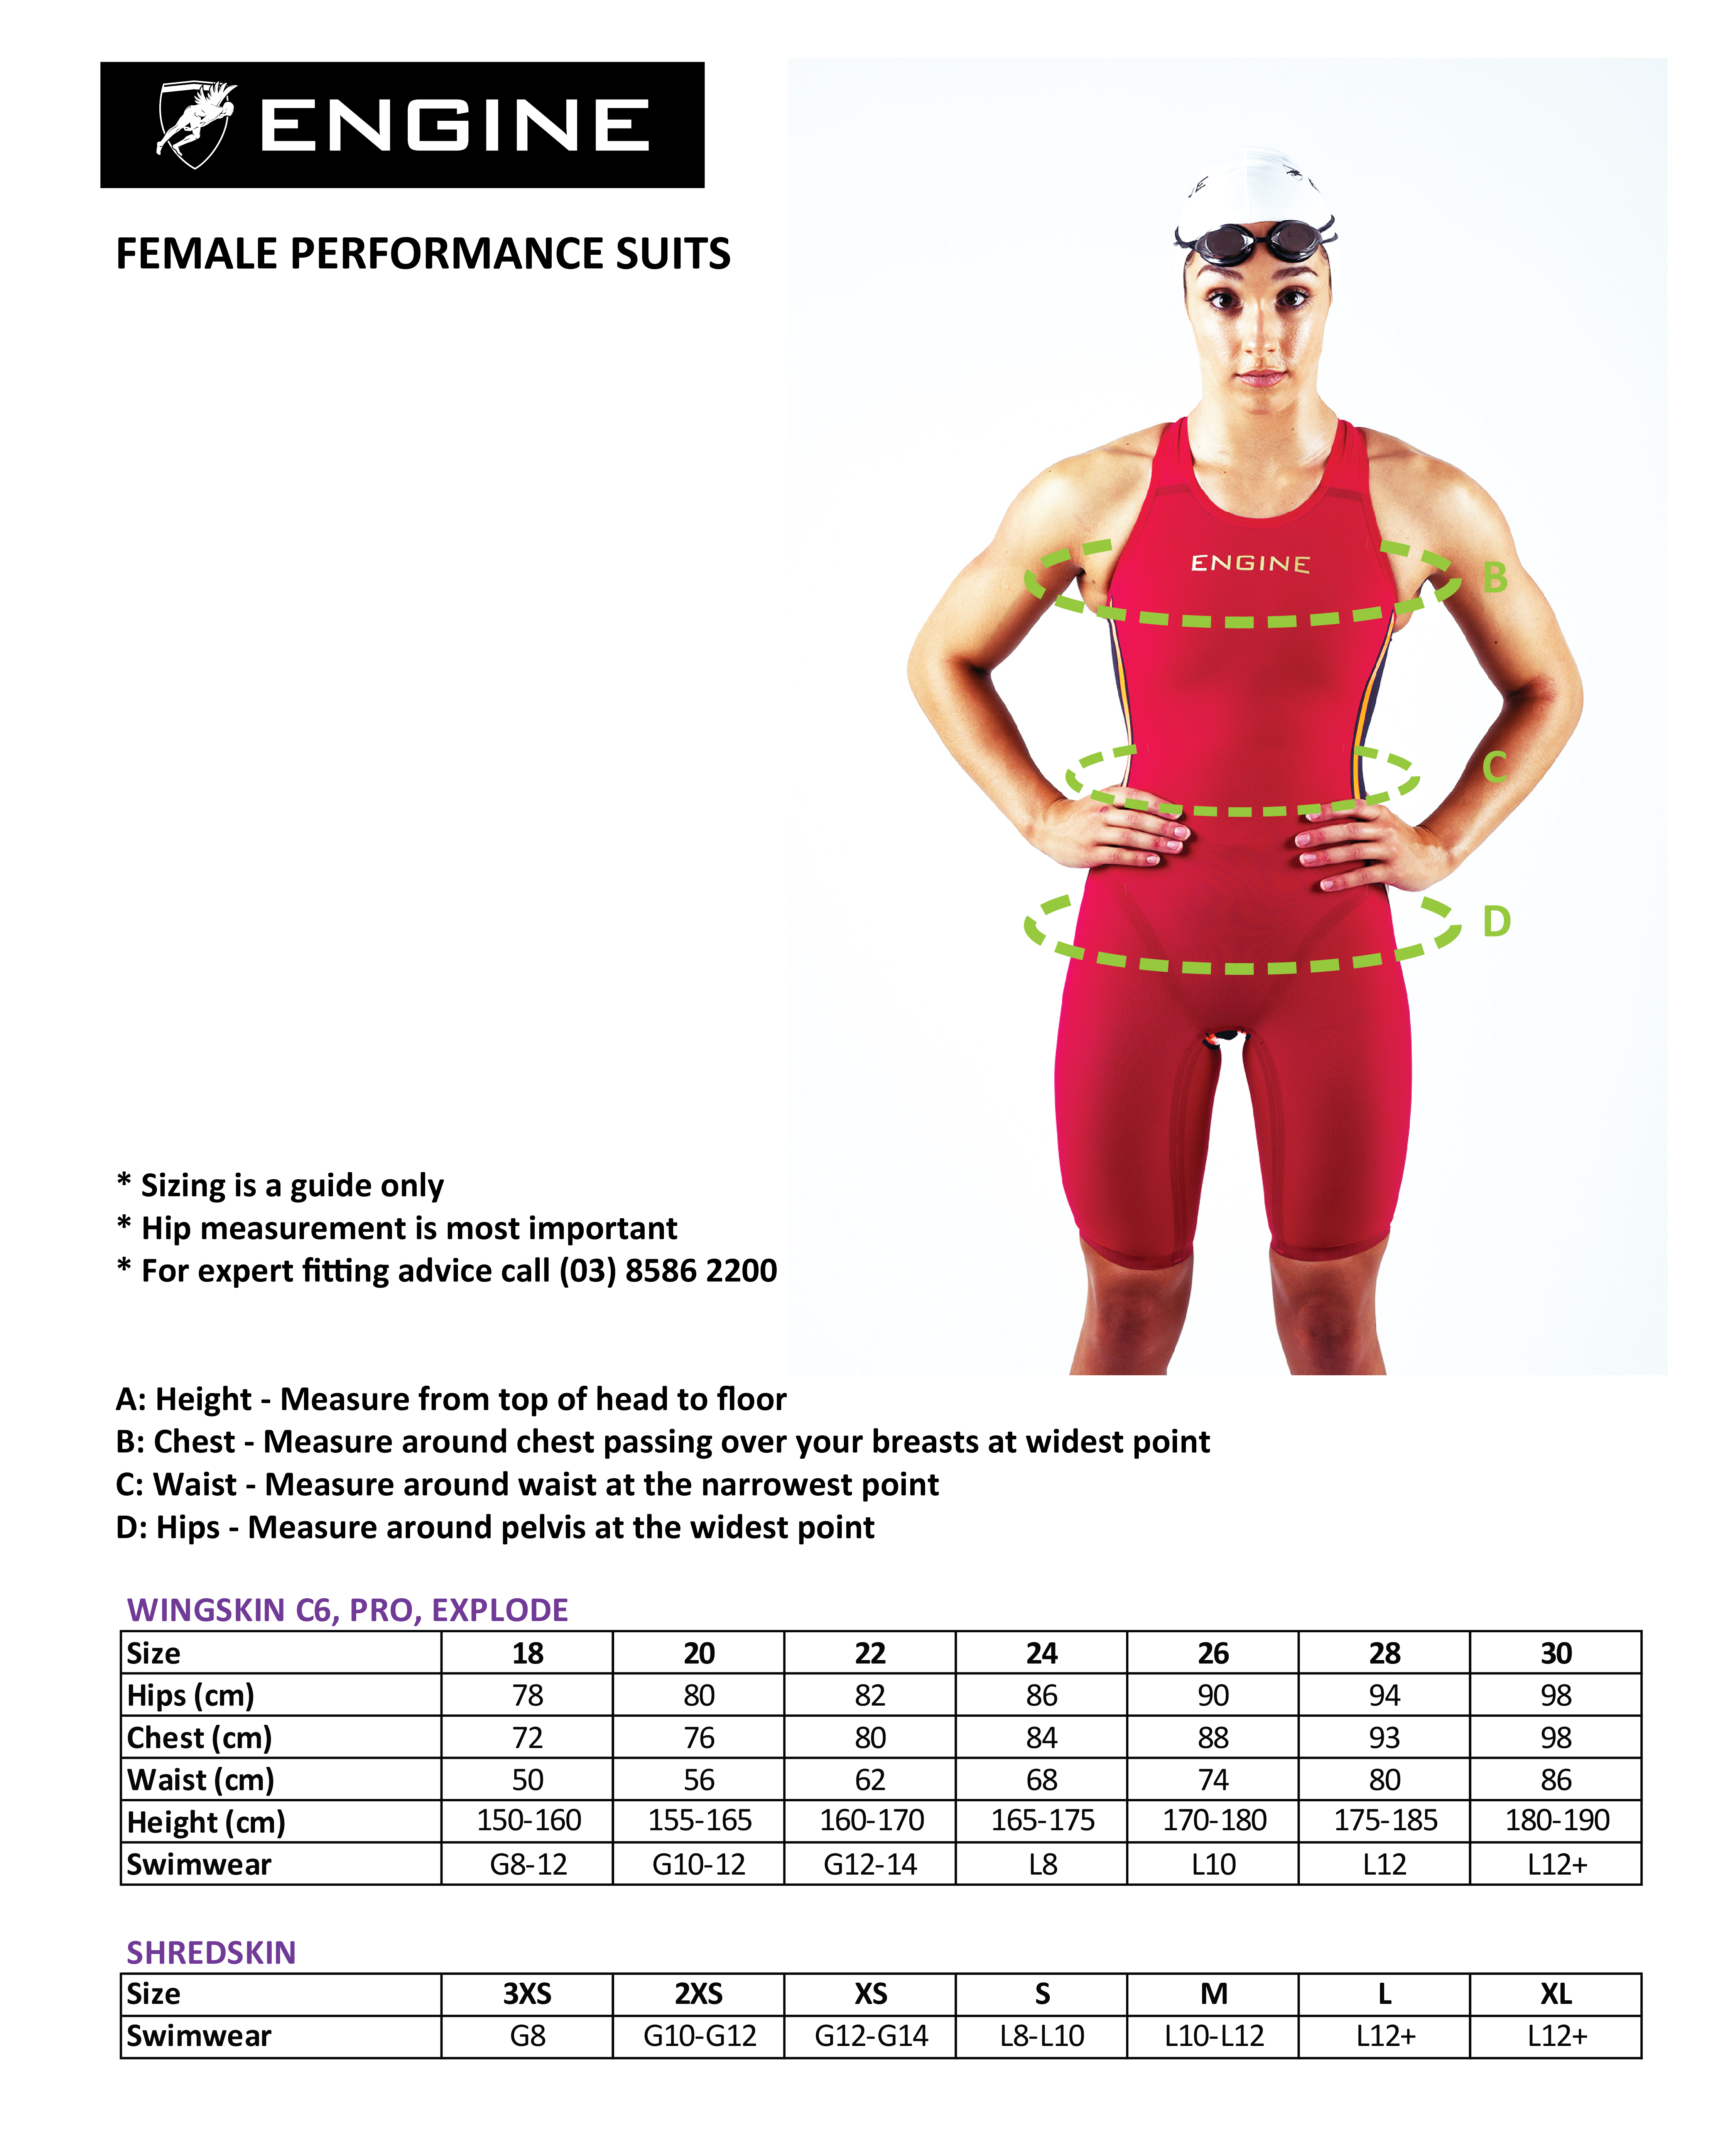 retail-sizing-charts-female-performance-01-02-01.jpg